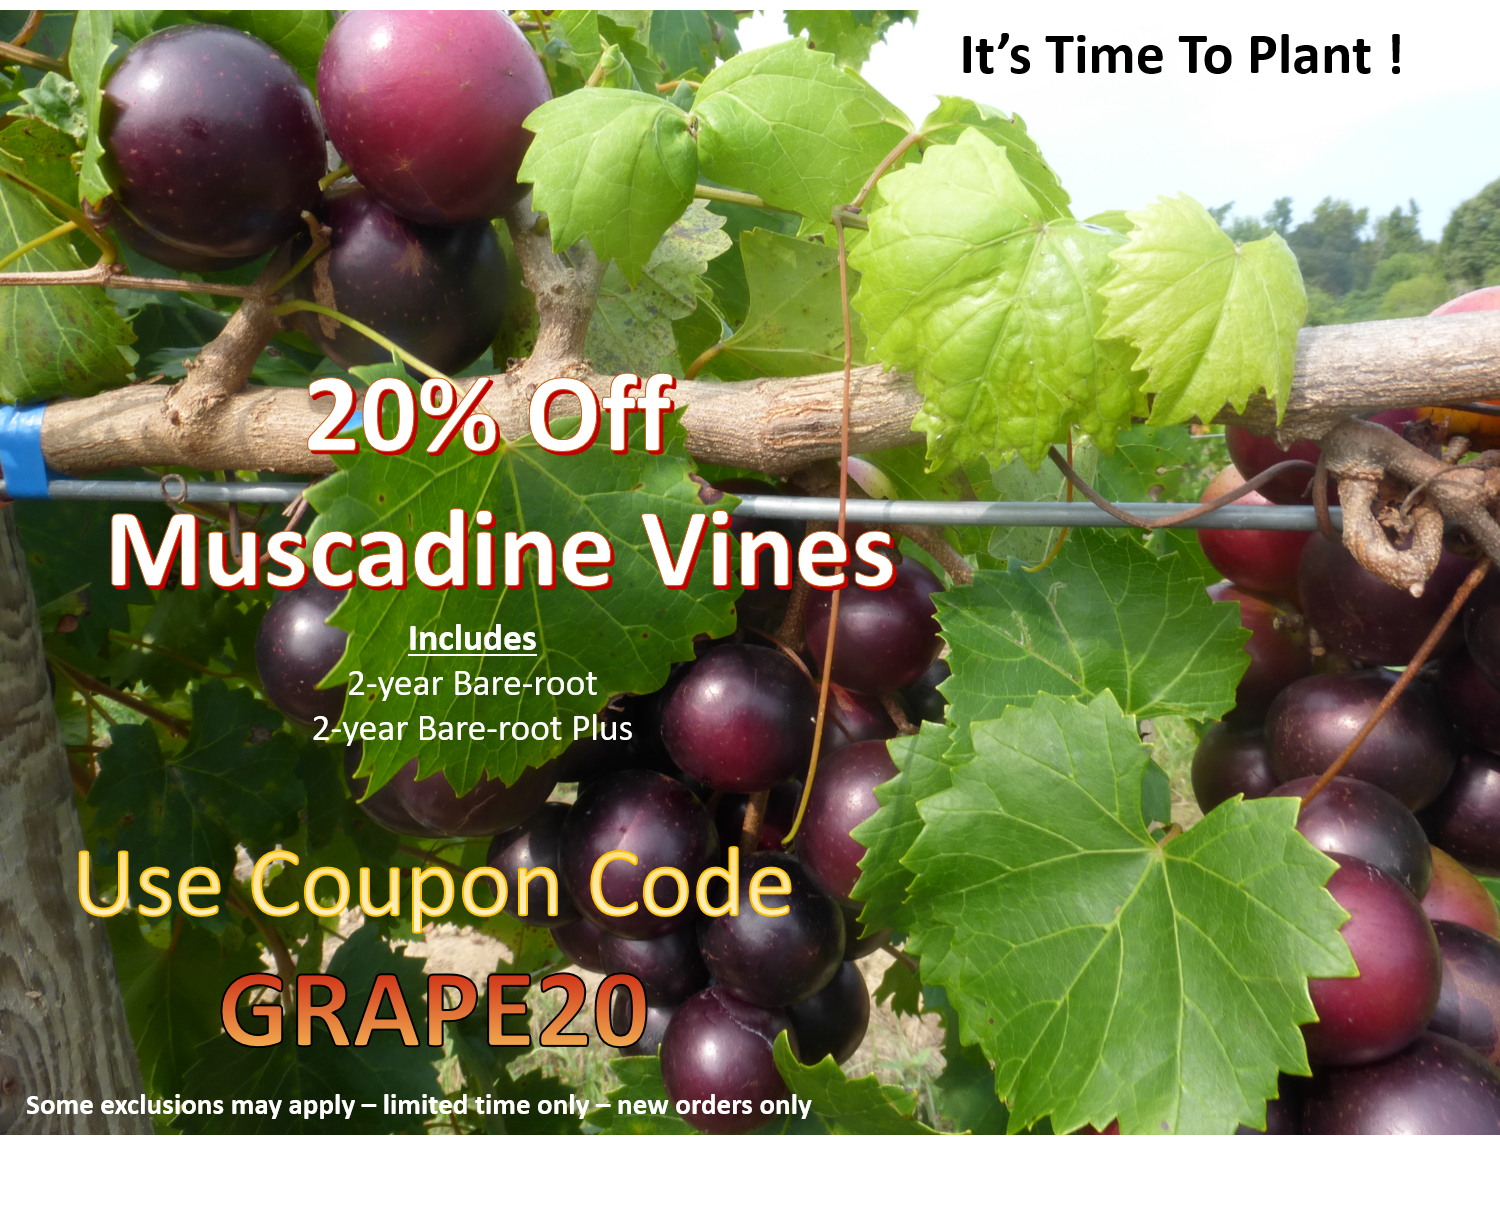 https://www.isons.com/wp-content/uploads/2017/02/Muscadines-20-Off-2017.png